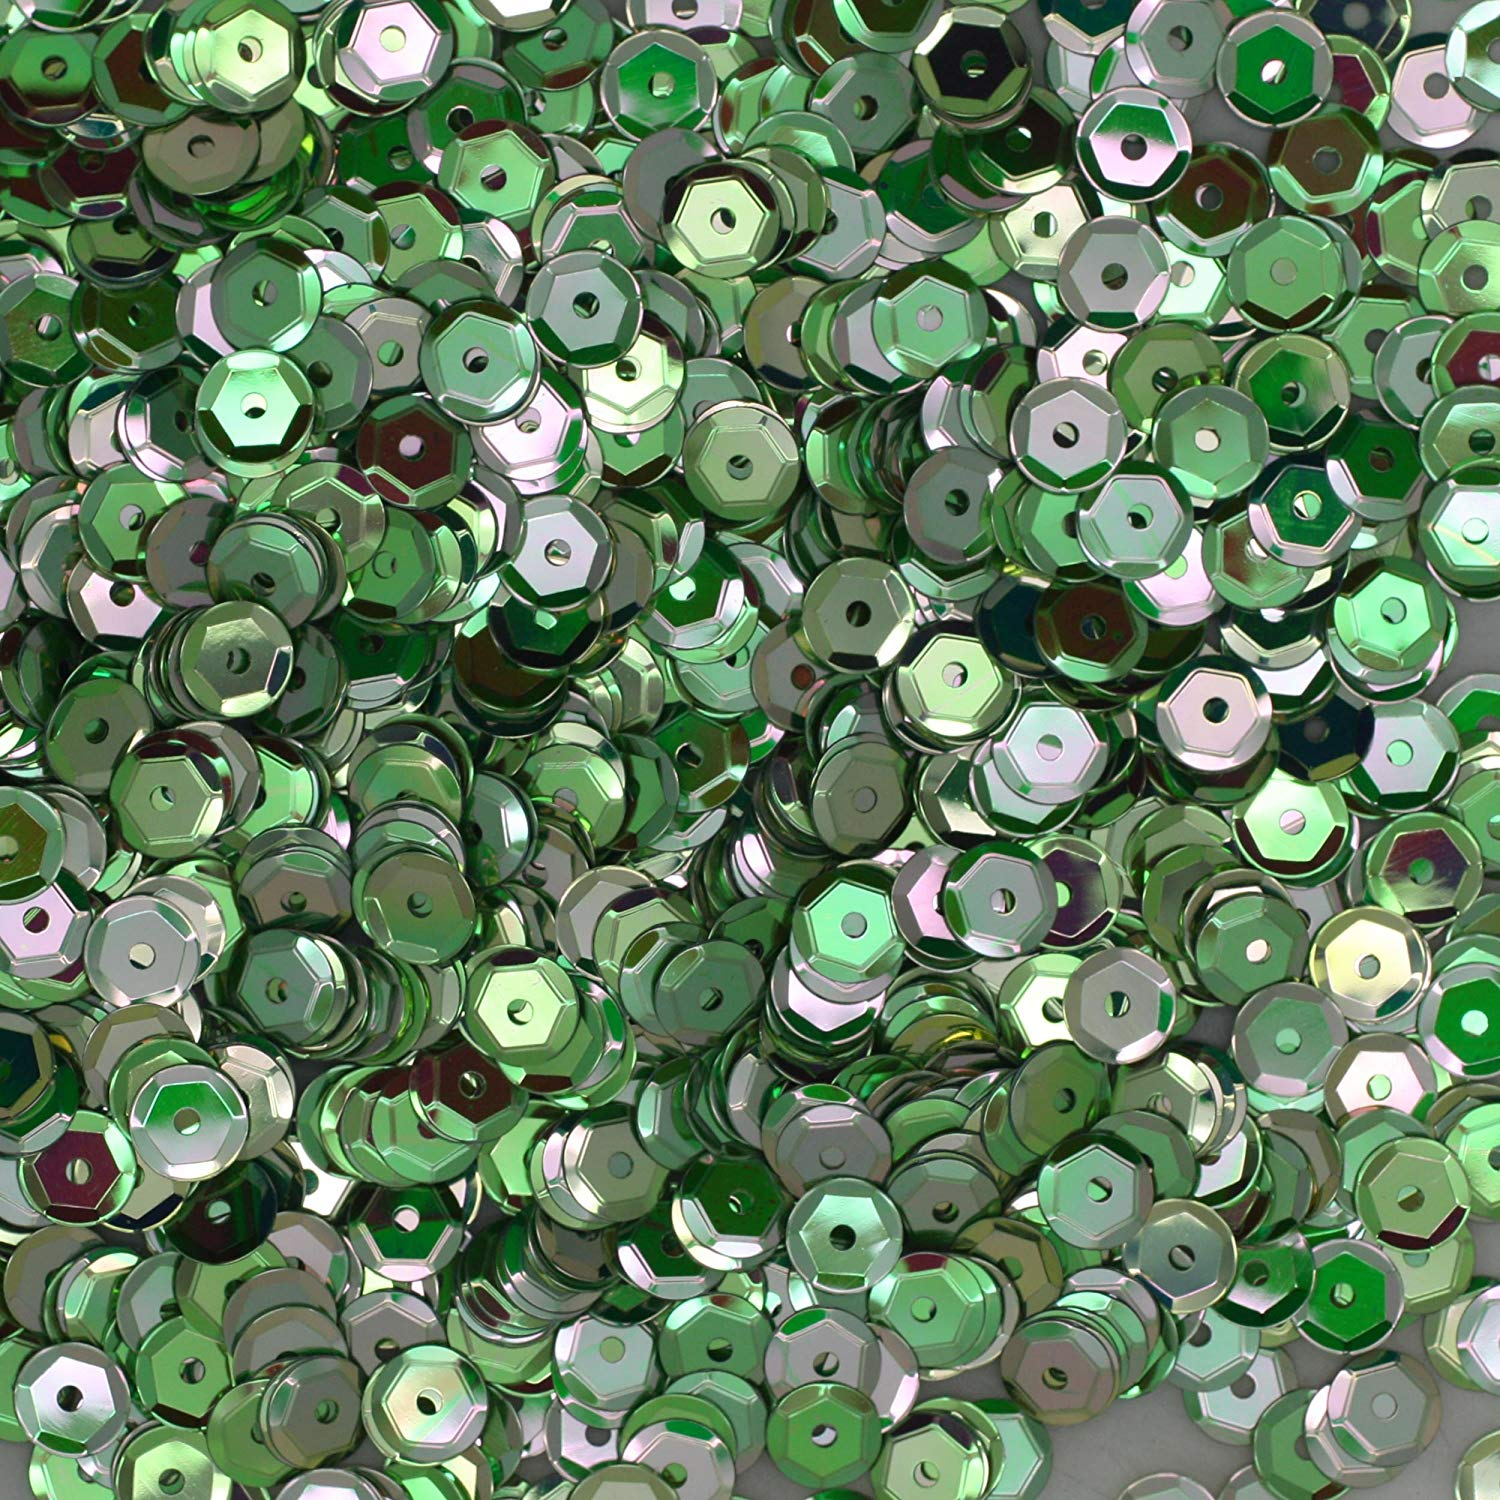 Made in USA 5mm Cup Sequins Silver Hologram Glitter Sparkle Metallic